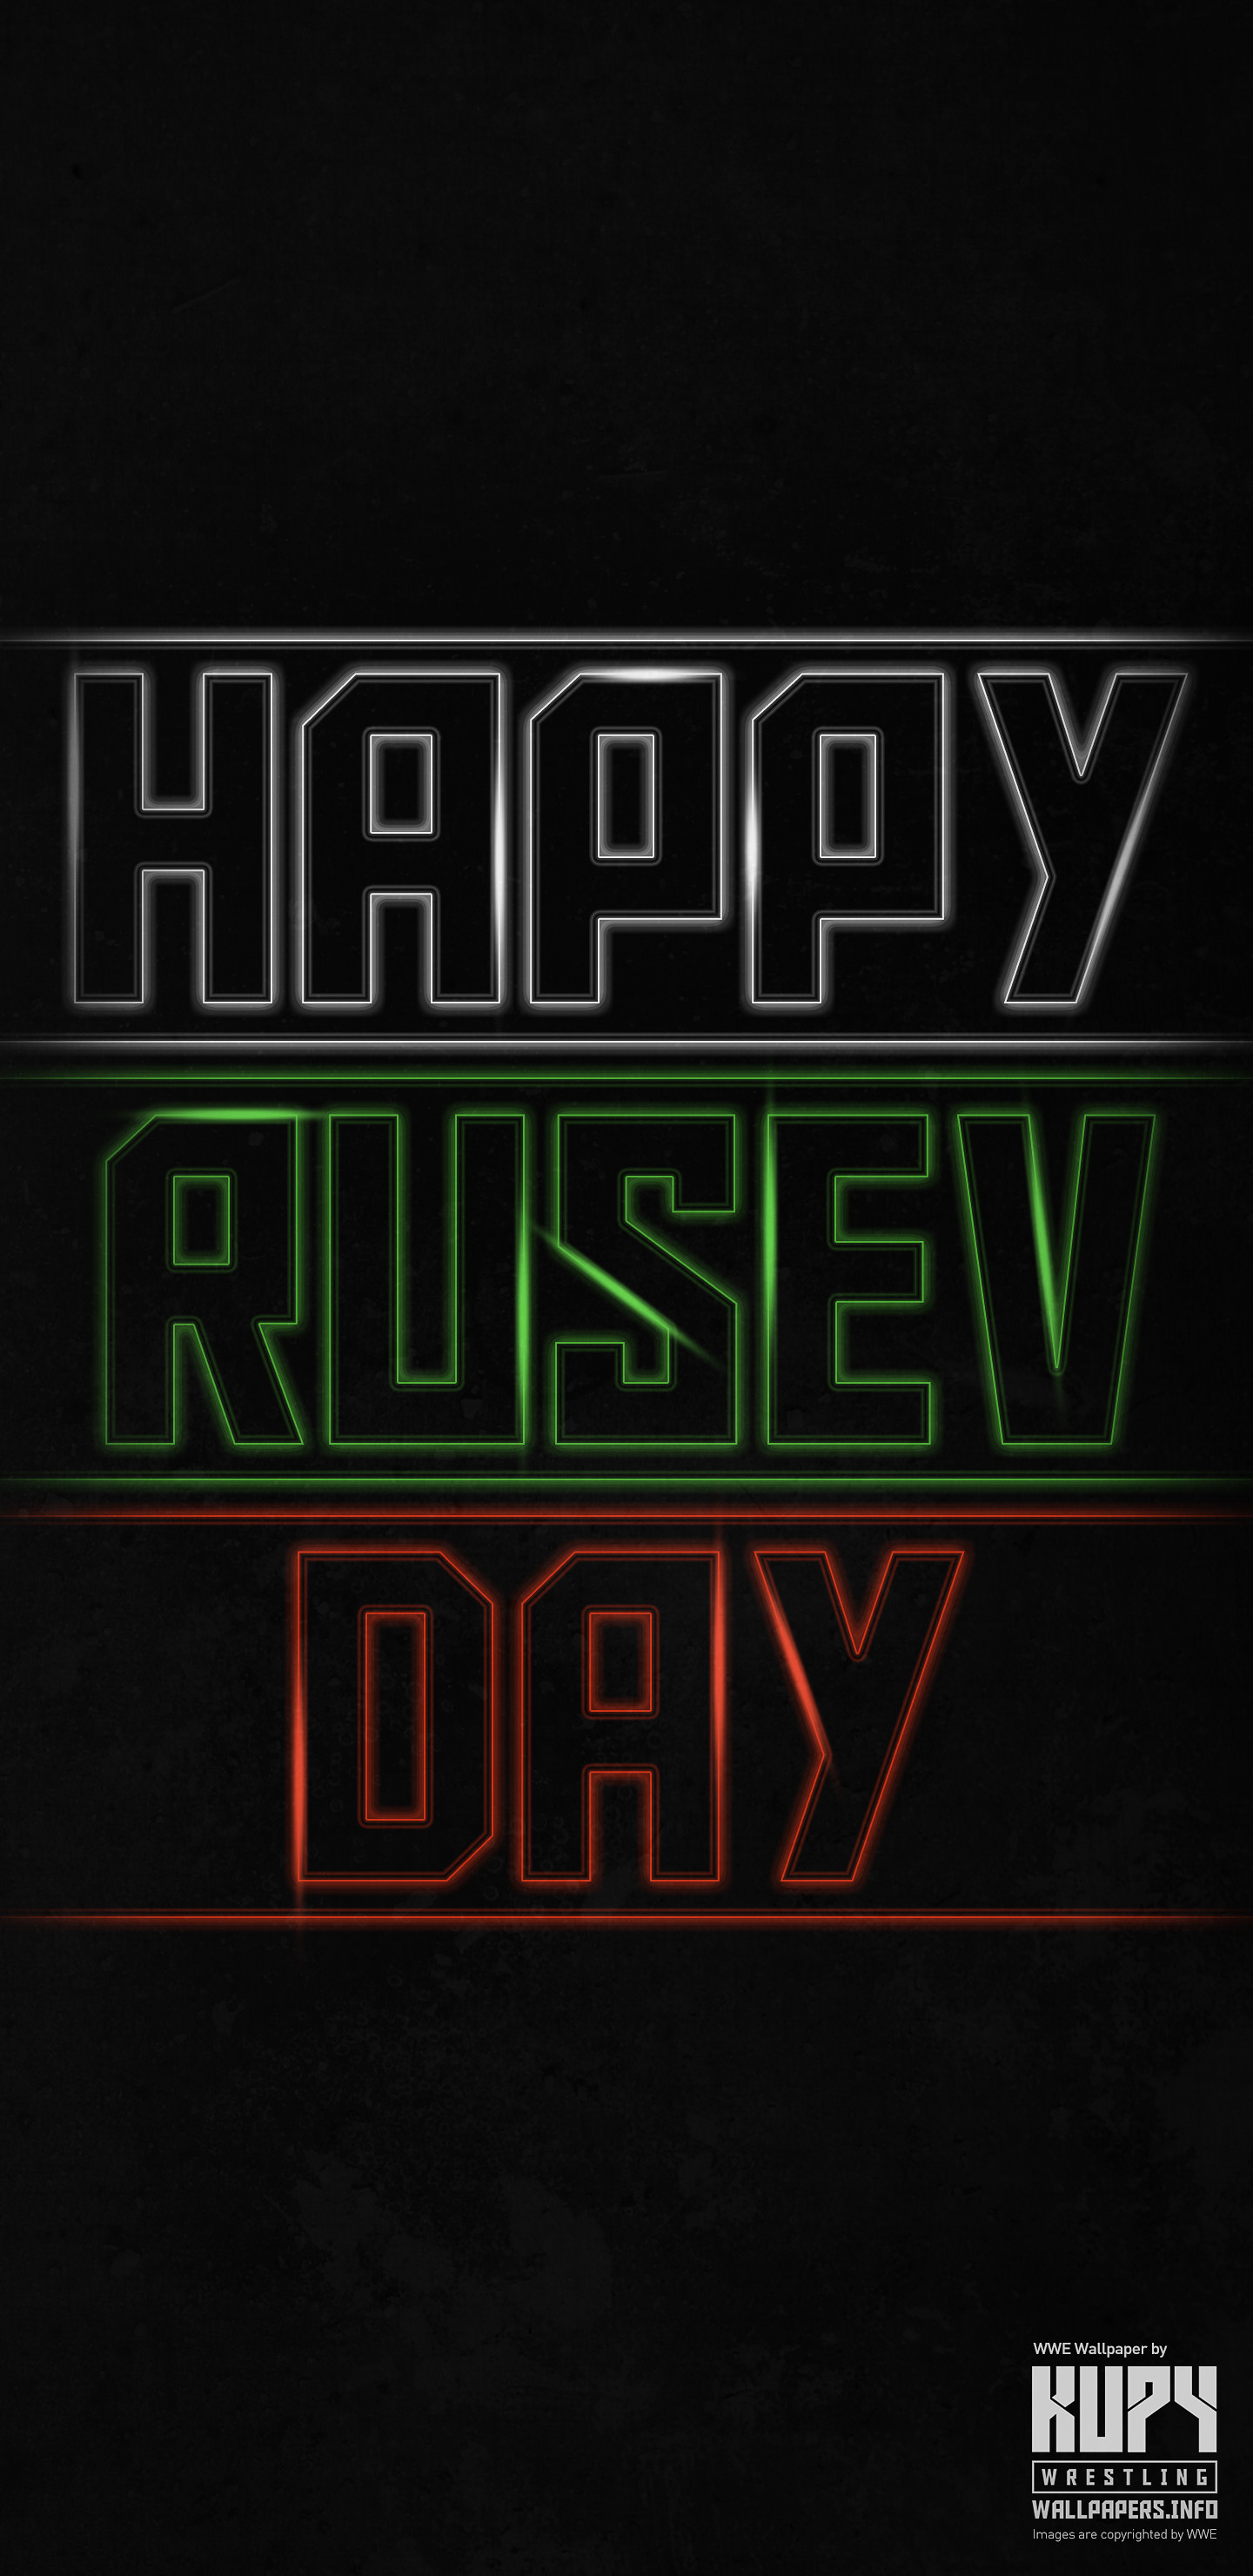 1440x2960 Mobile-only) NEW Happy Rusev Day iPhone / Android wallpaper! - Kupy ...